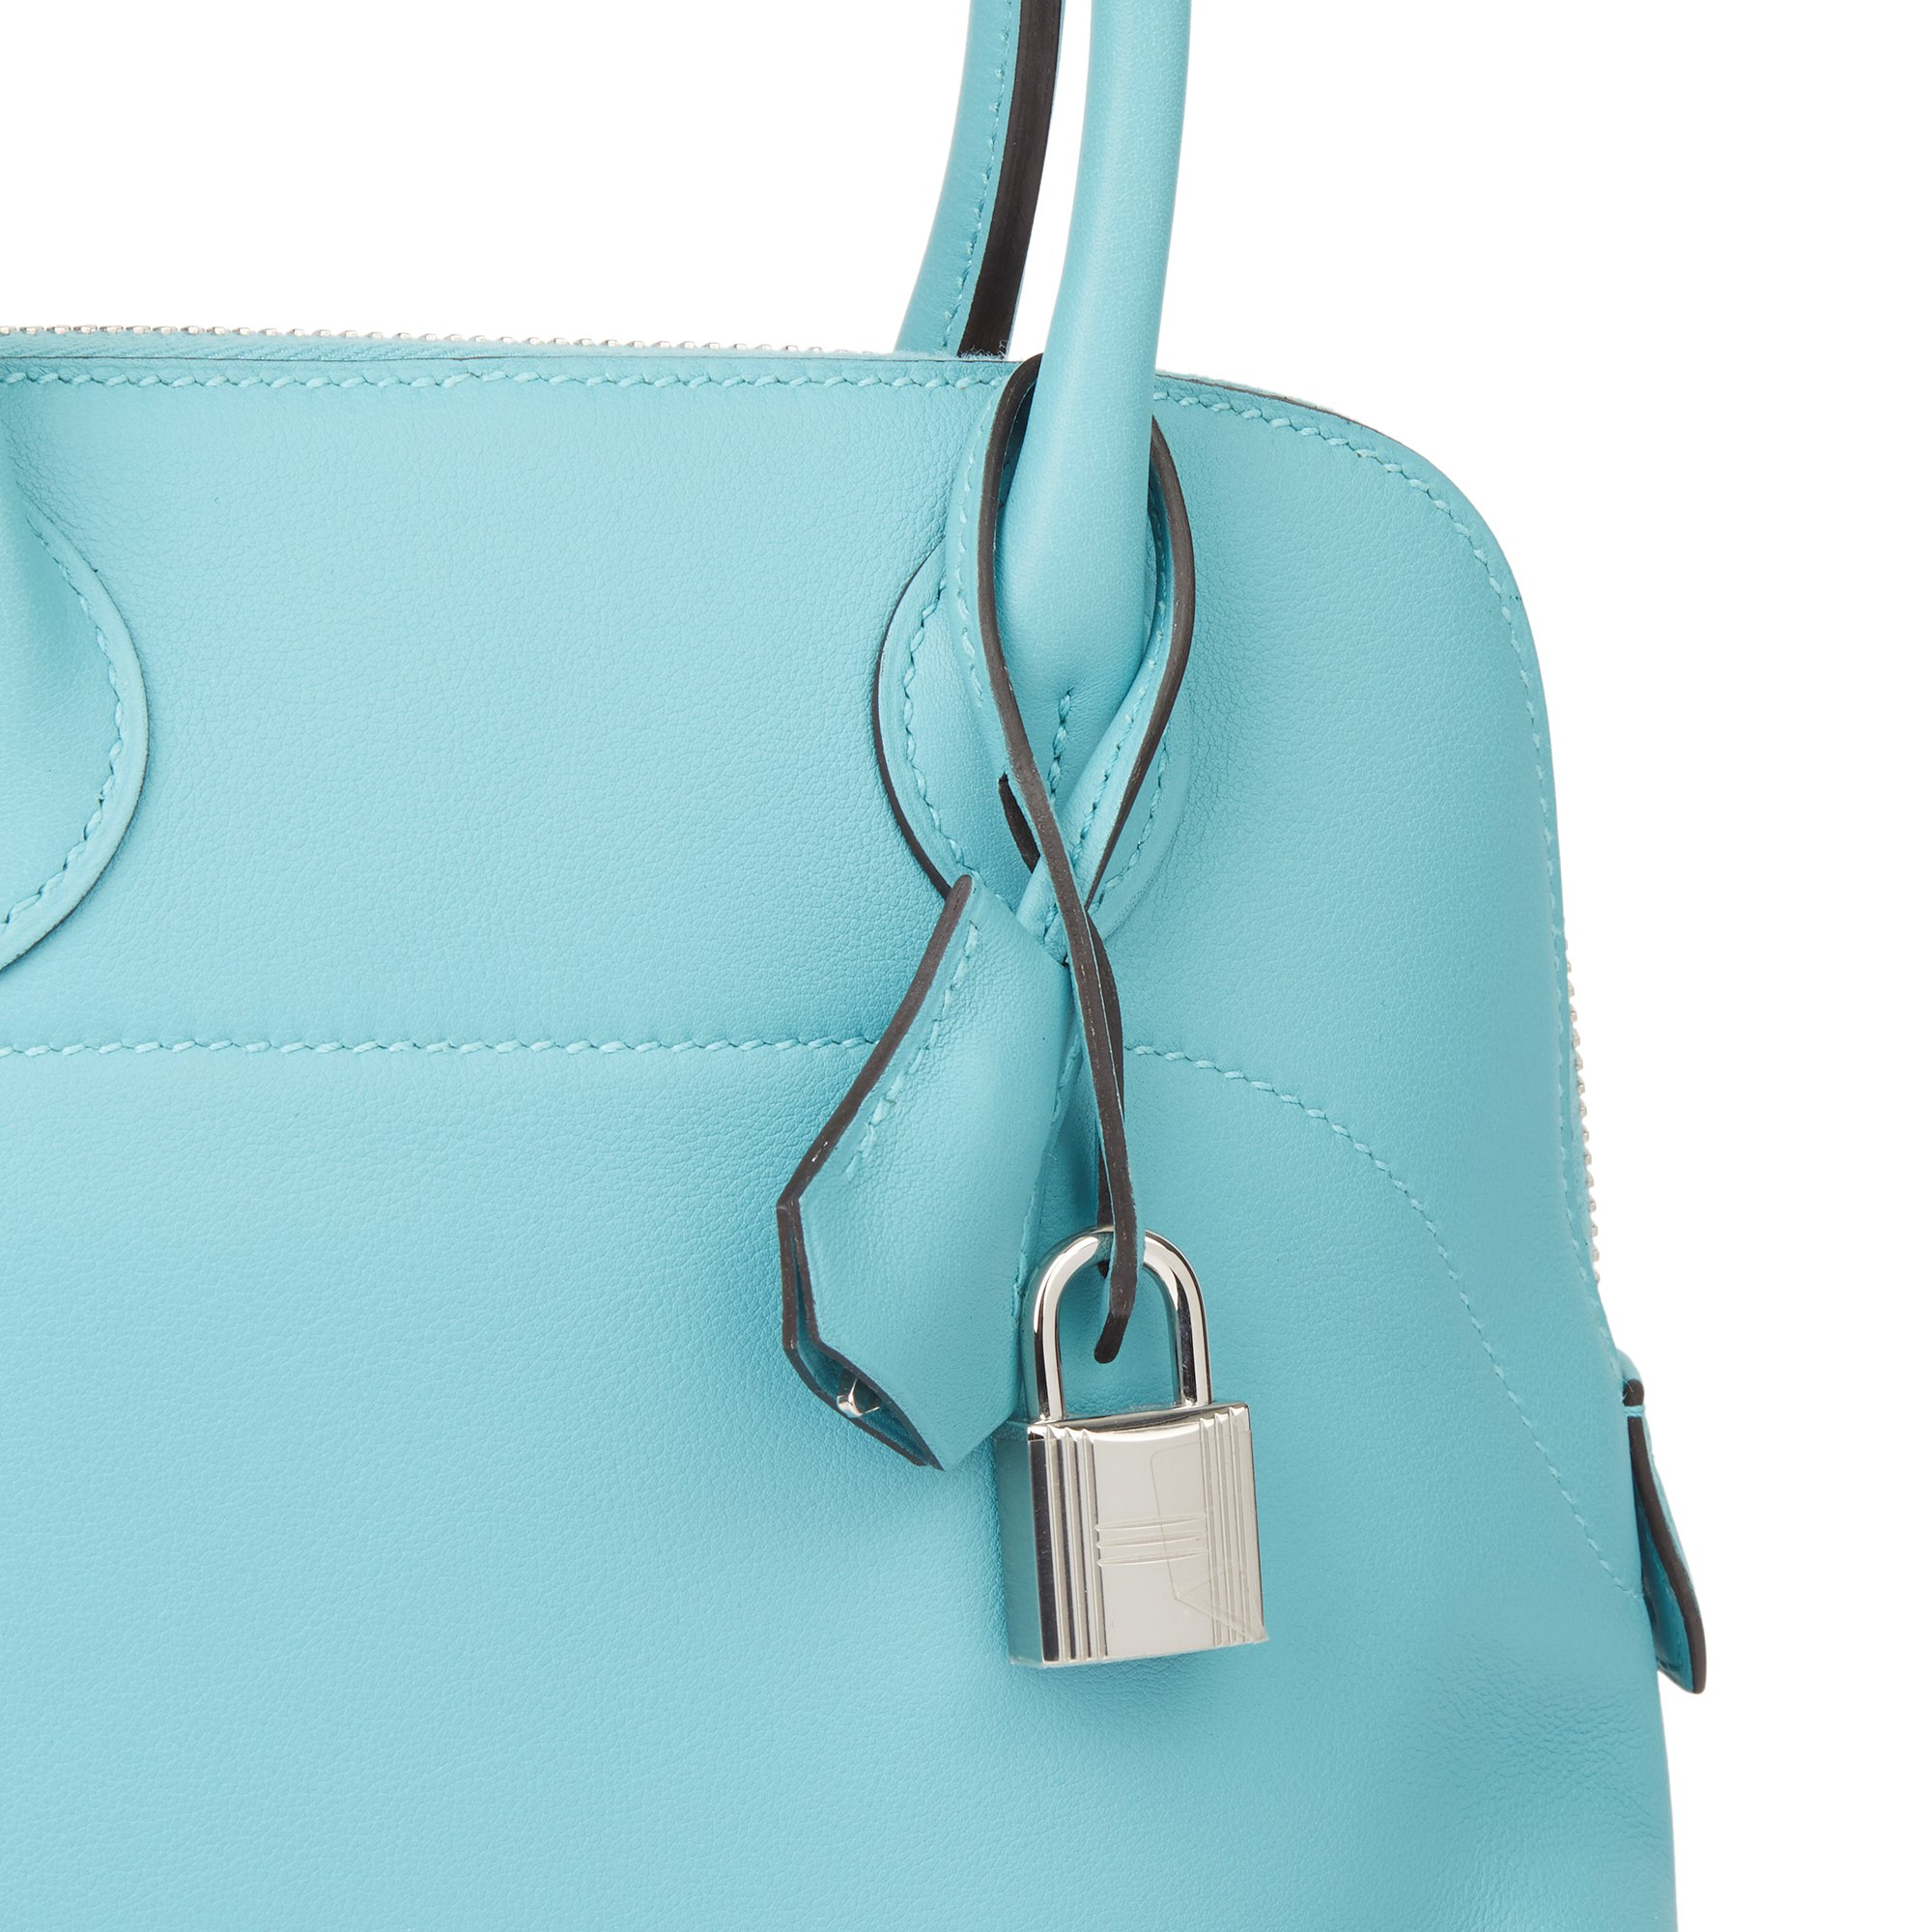 Hermès Blue Atoll Swift Leather Bolide Secret